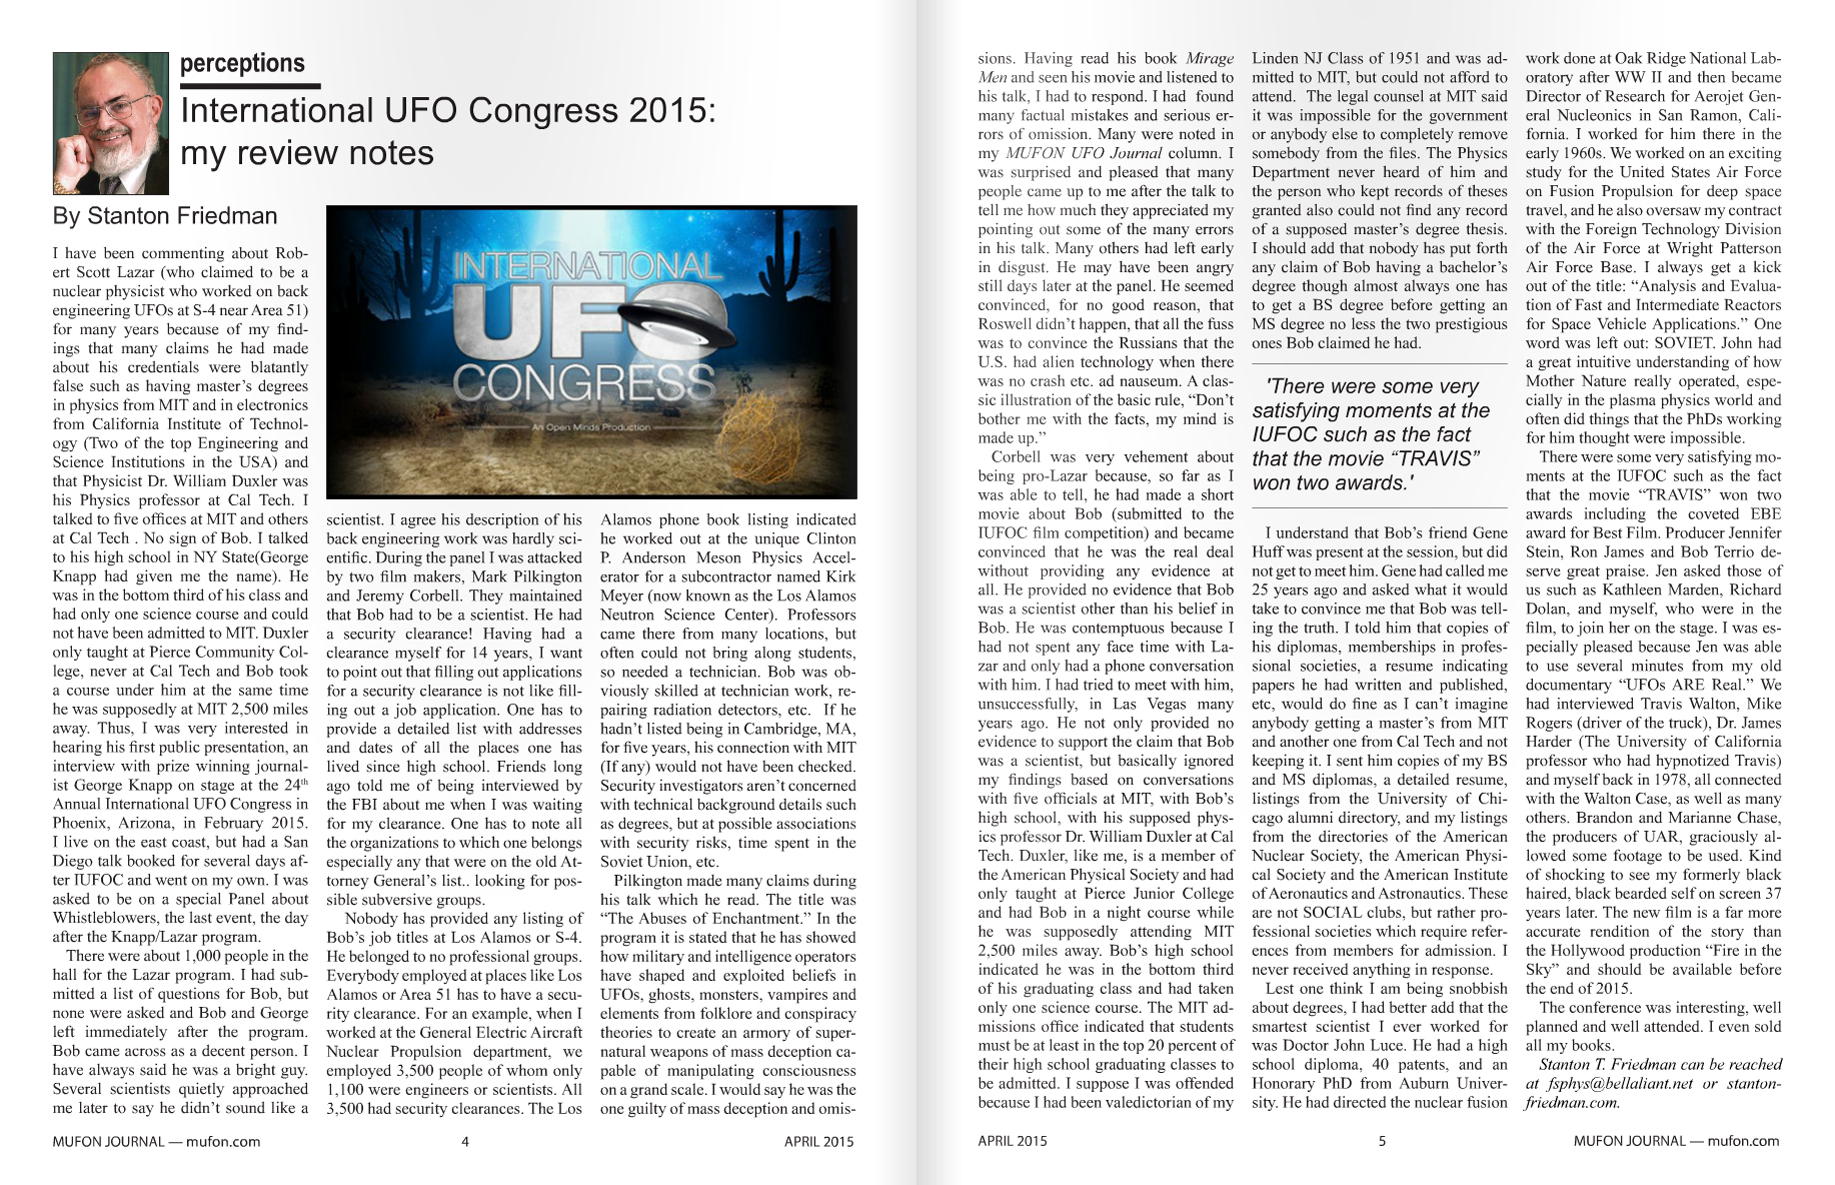 MUFON JOURNAL - APRIL 2015